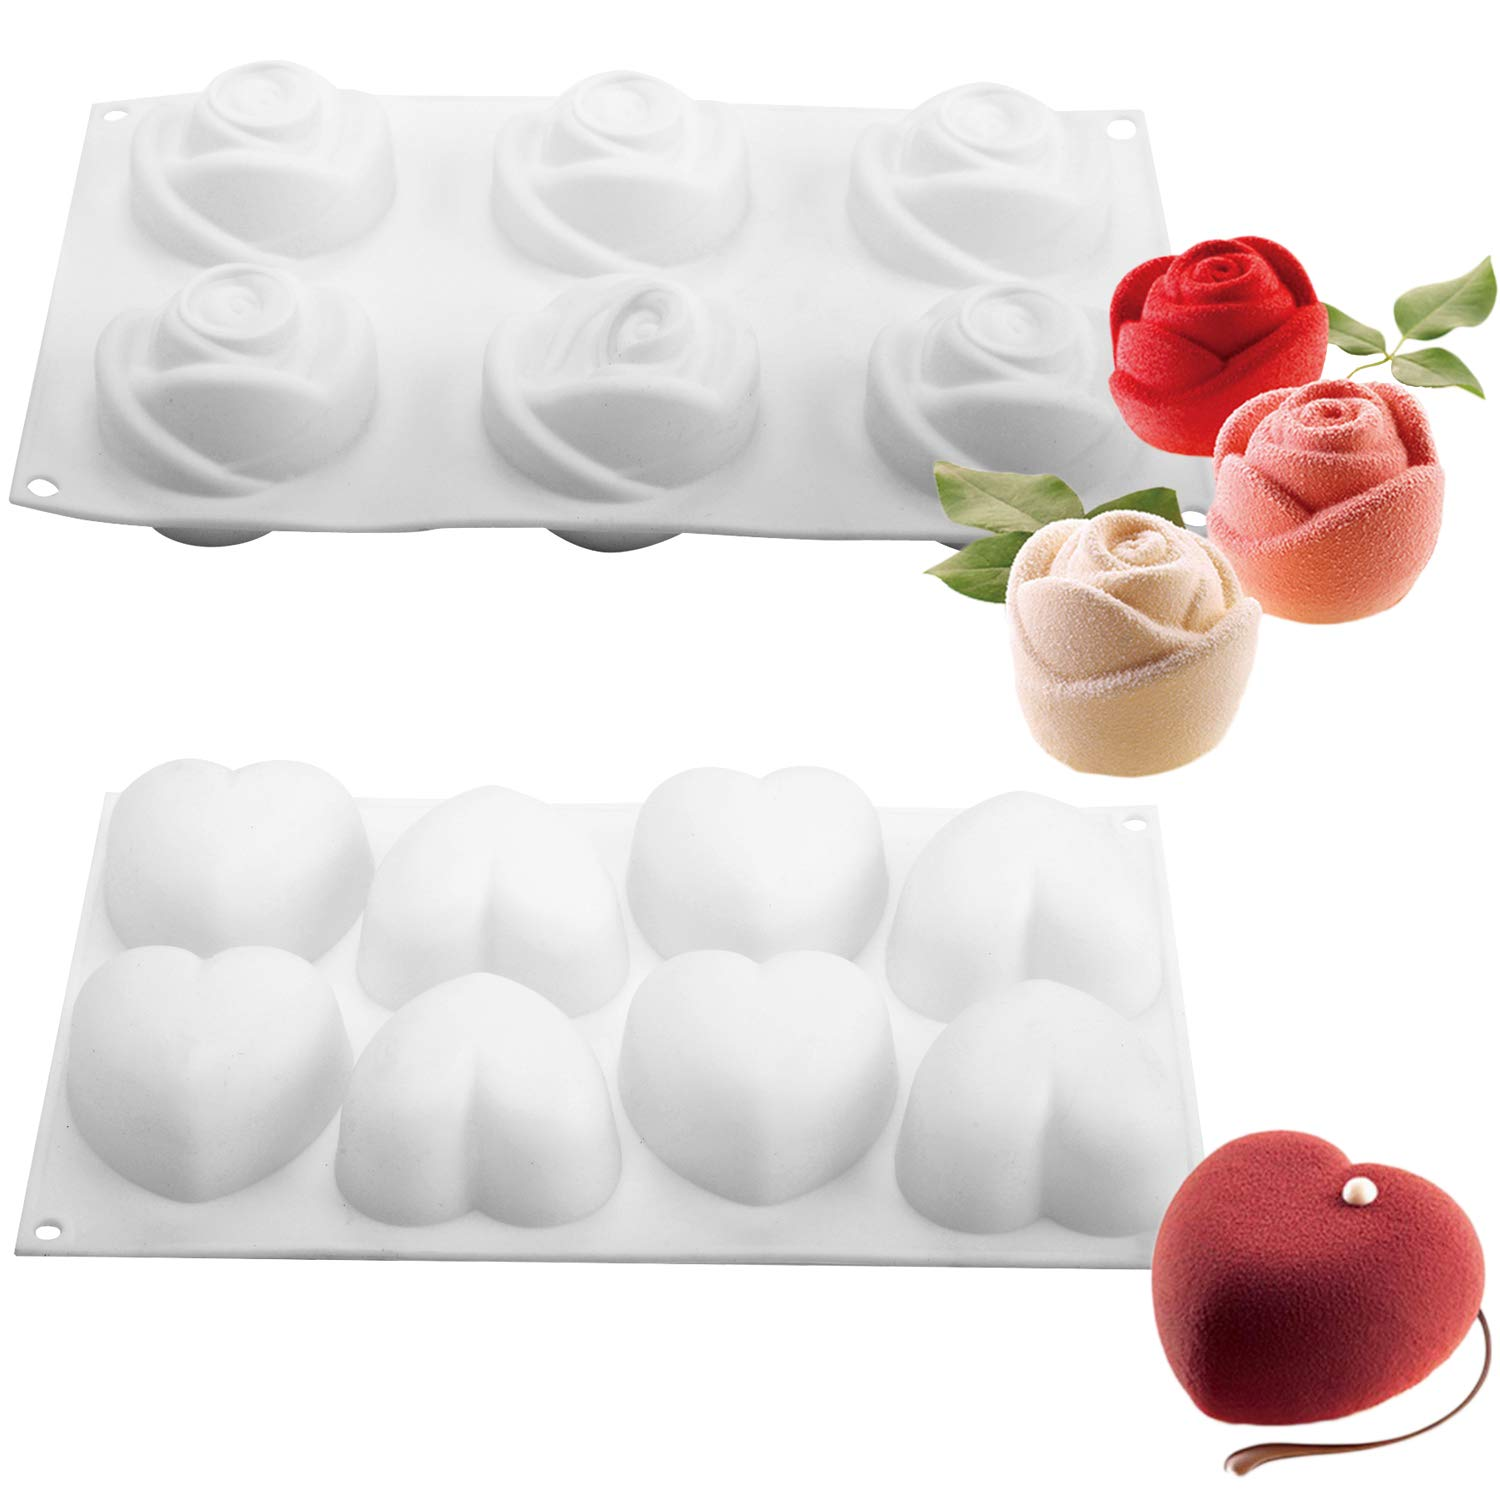 Easy Release FDA BPA Free 2pcs Silicone Mousse Cake Molds 3D Heart Rose Shape DIY Baking Pan Nonstick Bakeware Decorating Tool for Ice Cream Chiffon Chocolate Dessert Jelly Pastry Christmas